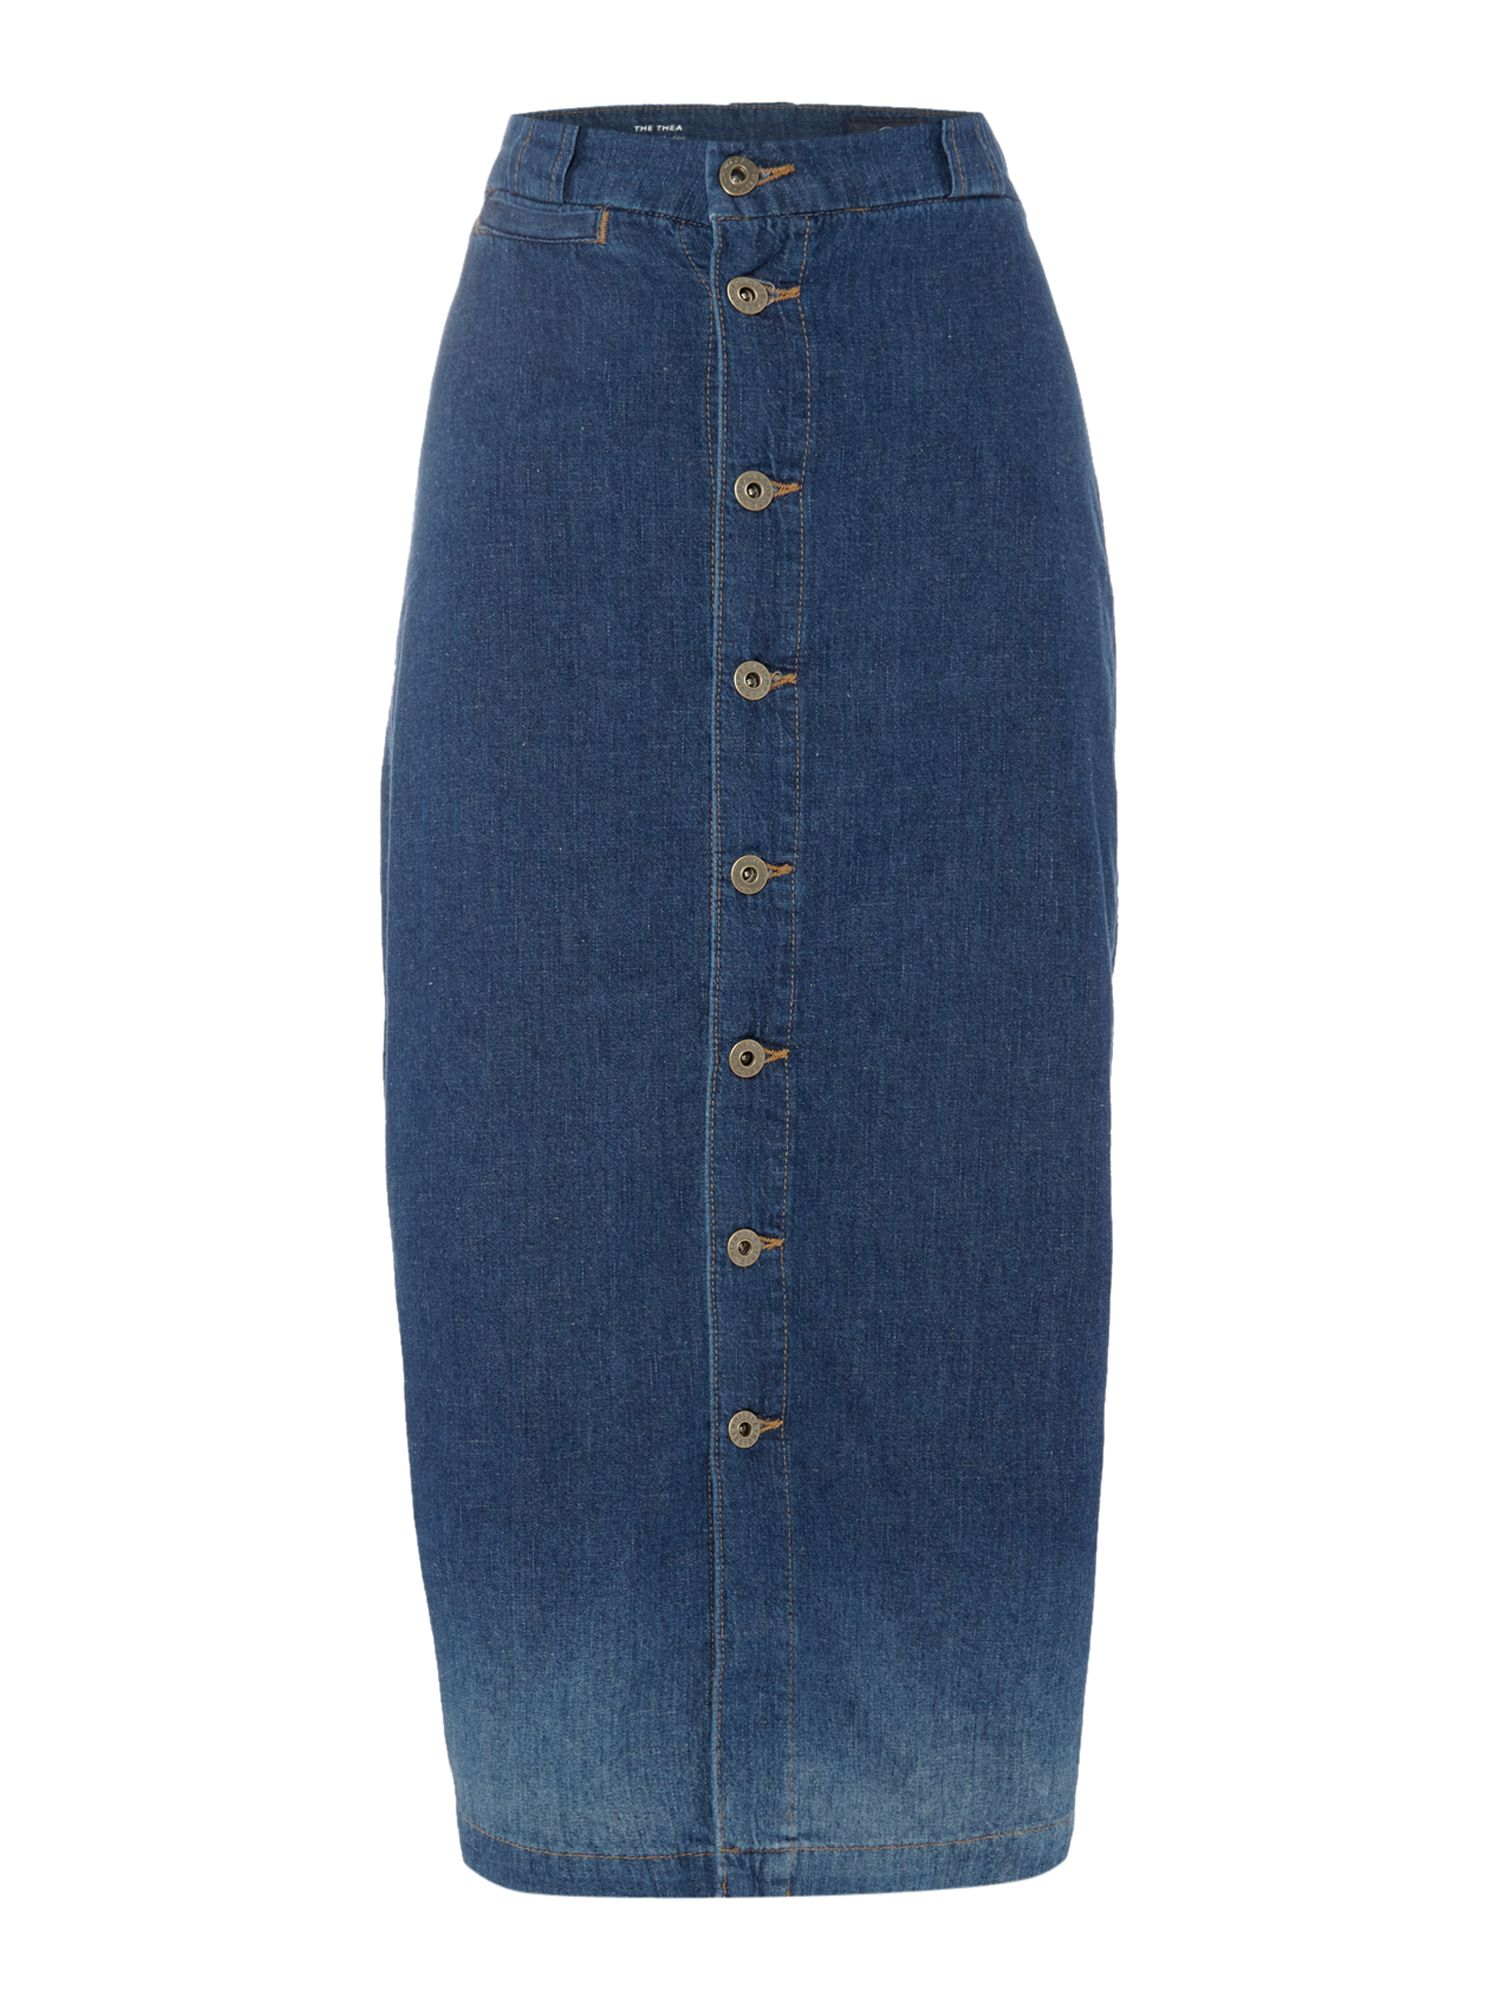 AG Jeans The thea denim skirt in desert cafe, Denim